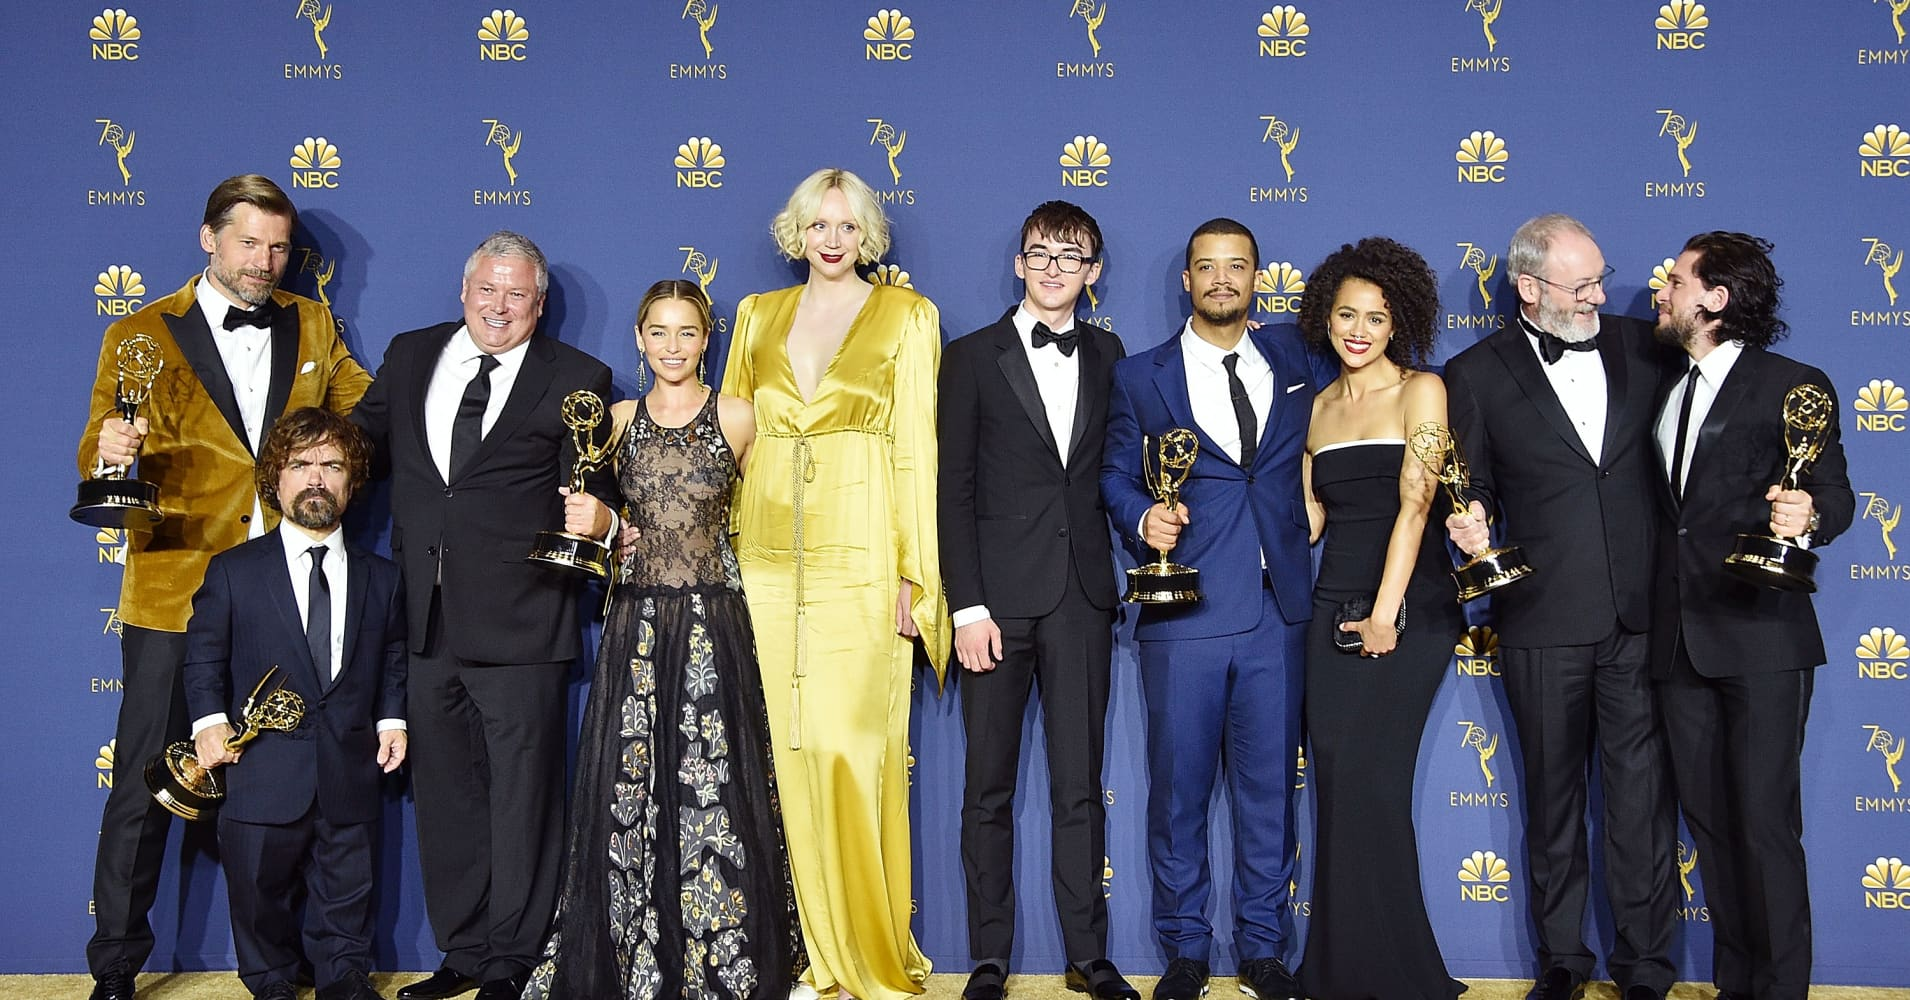 (L-R) Nikolaj Coster-Waldau, Peter Dinklage, Conleth Hill, Emilia Clarke, Gwendoline Christie, Isaac Hempstead Wright, Jacob Anderson, Nathalie Emmanuel, Liam Cunningham and Kit Harington of 'Game of Thrones' attend the 70th Emmy Awards.